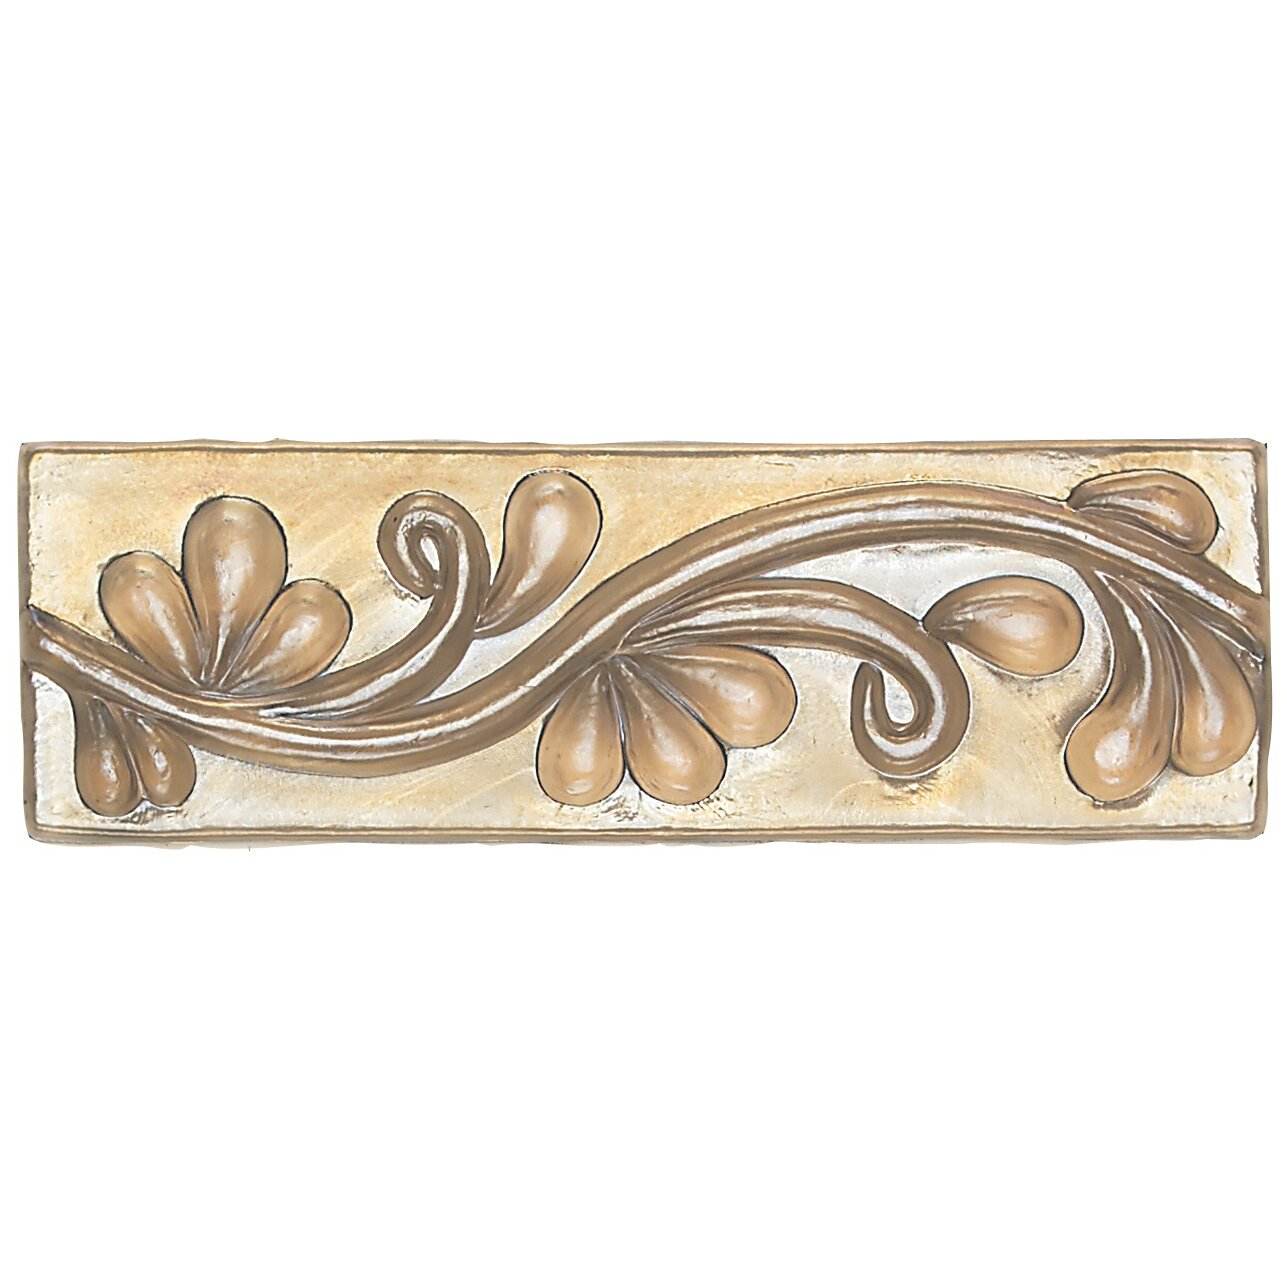 "Daltile Cristallo Glass 8"" X 3"" Decorative Vine Chair Rail"